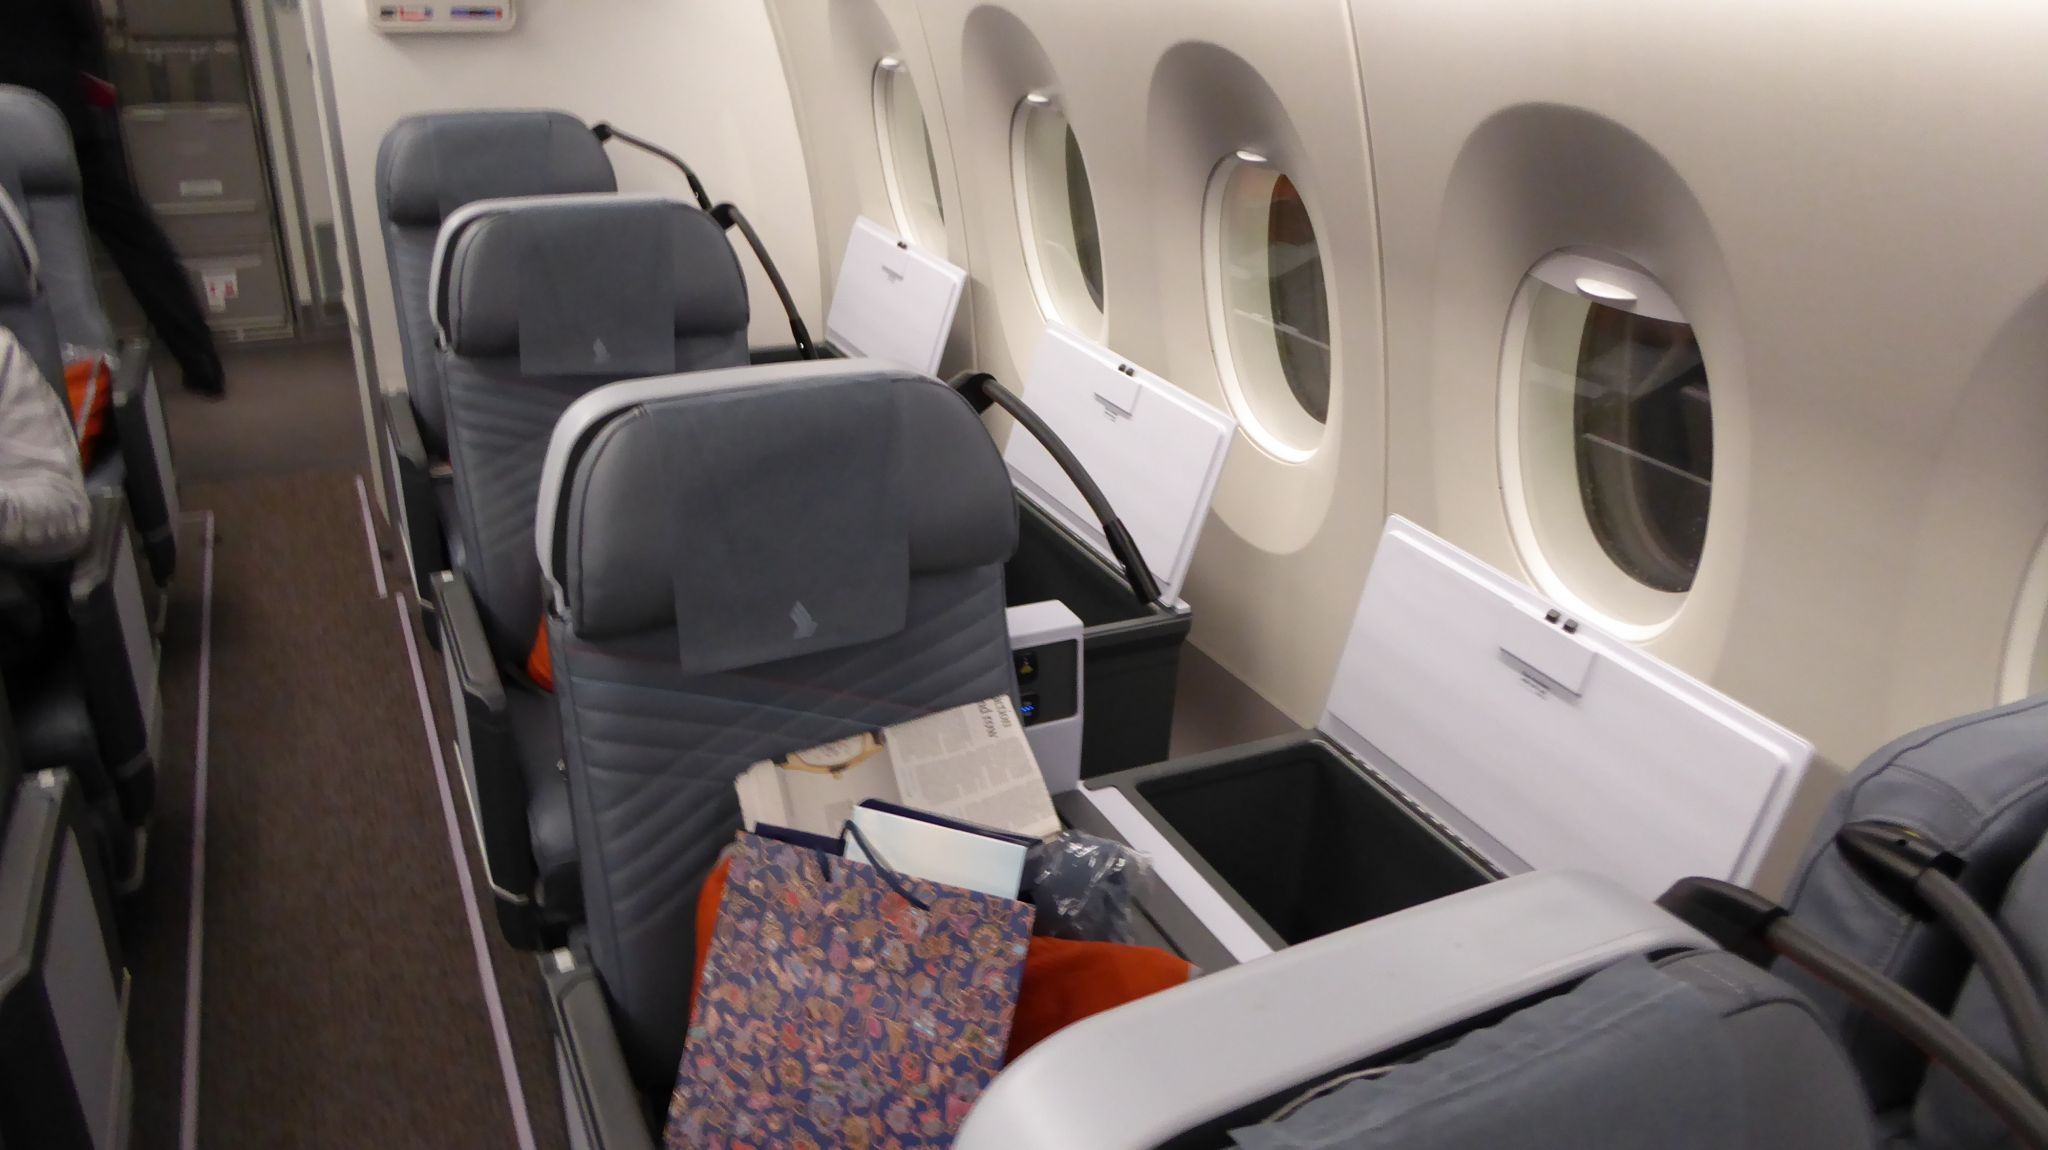 Review: Singapore Airlines premium economy, A350 from SFO